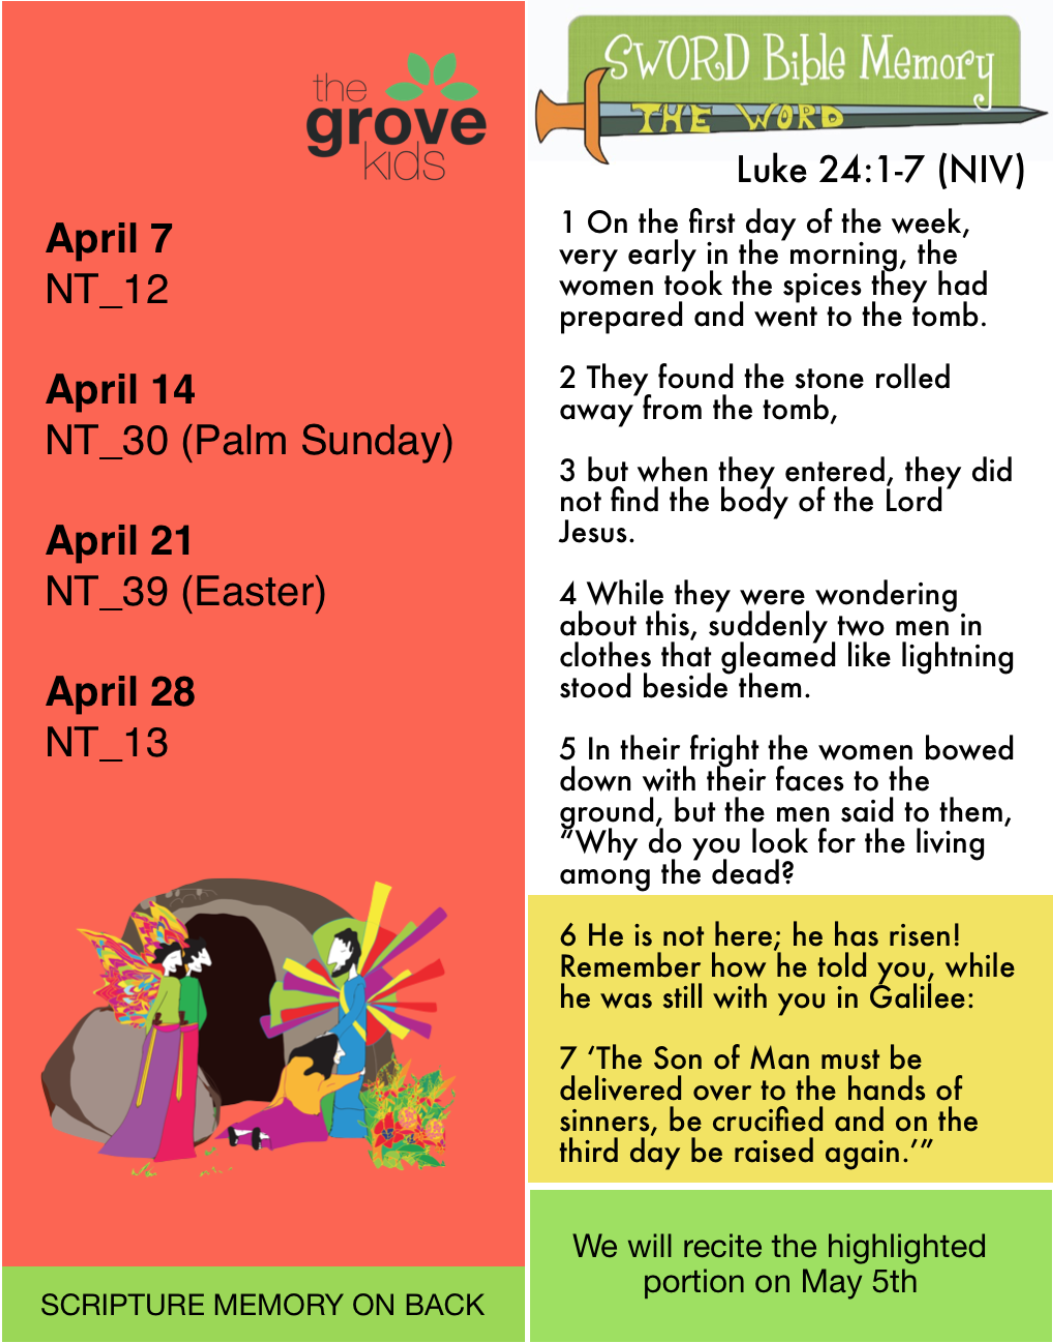 Scripture Memory  - Check out the highlighted portion on the bookmark below to see what we will recite in our Gathering May 5th.